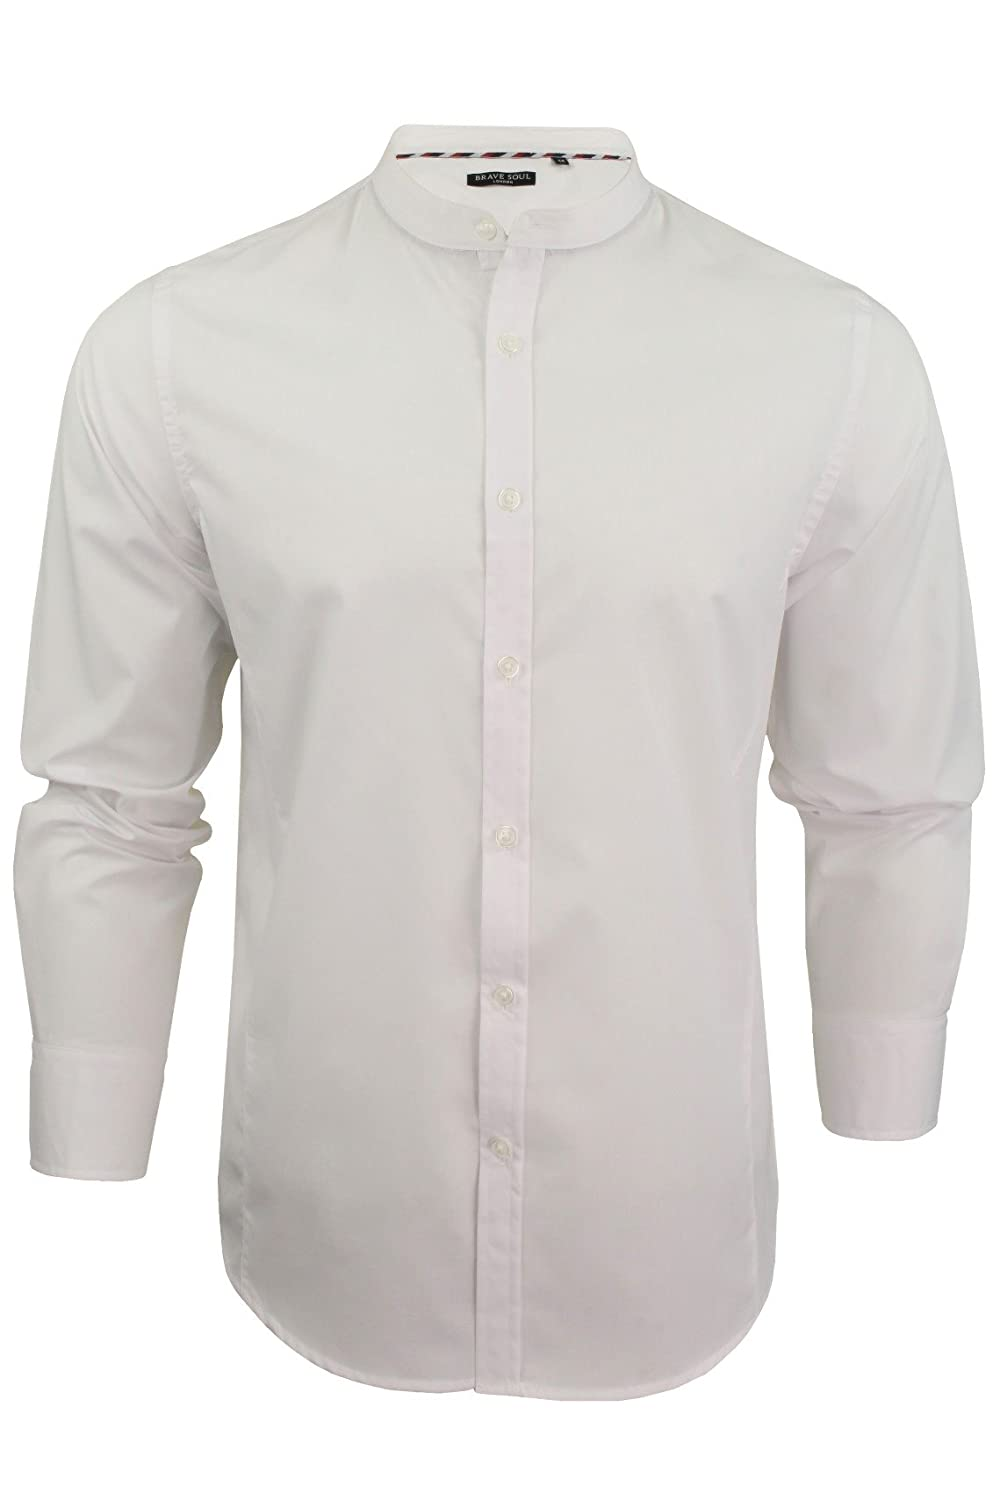 1920s Mens Shirts and Collars History Brave Soul Mens Plain Shirts Long Sleeved Grandad Collar Button Fashion Casual £14.99 AT vintagedancer.com